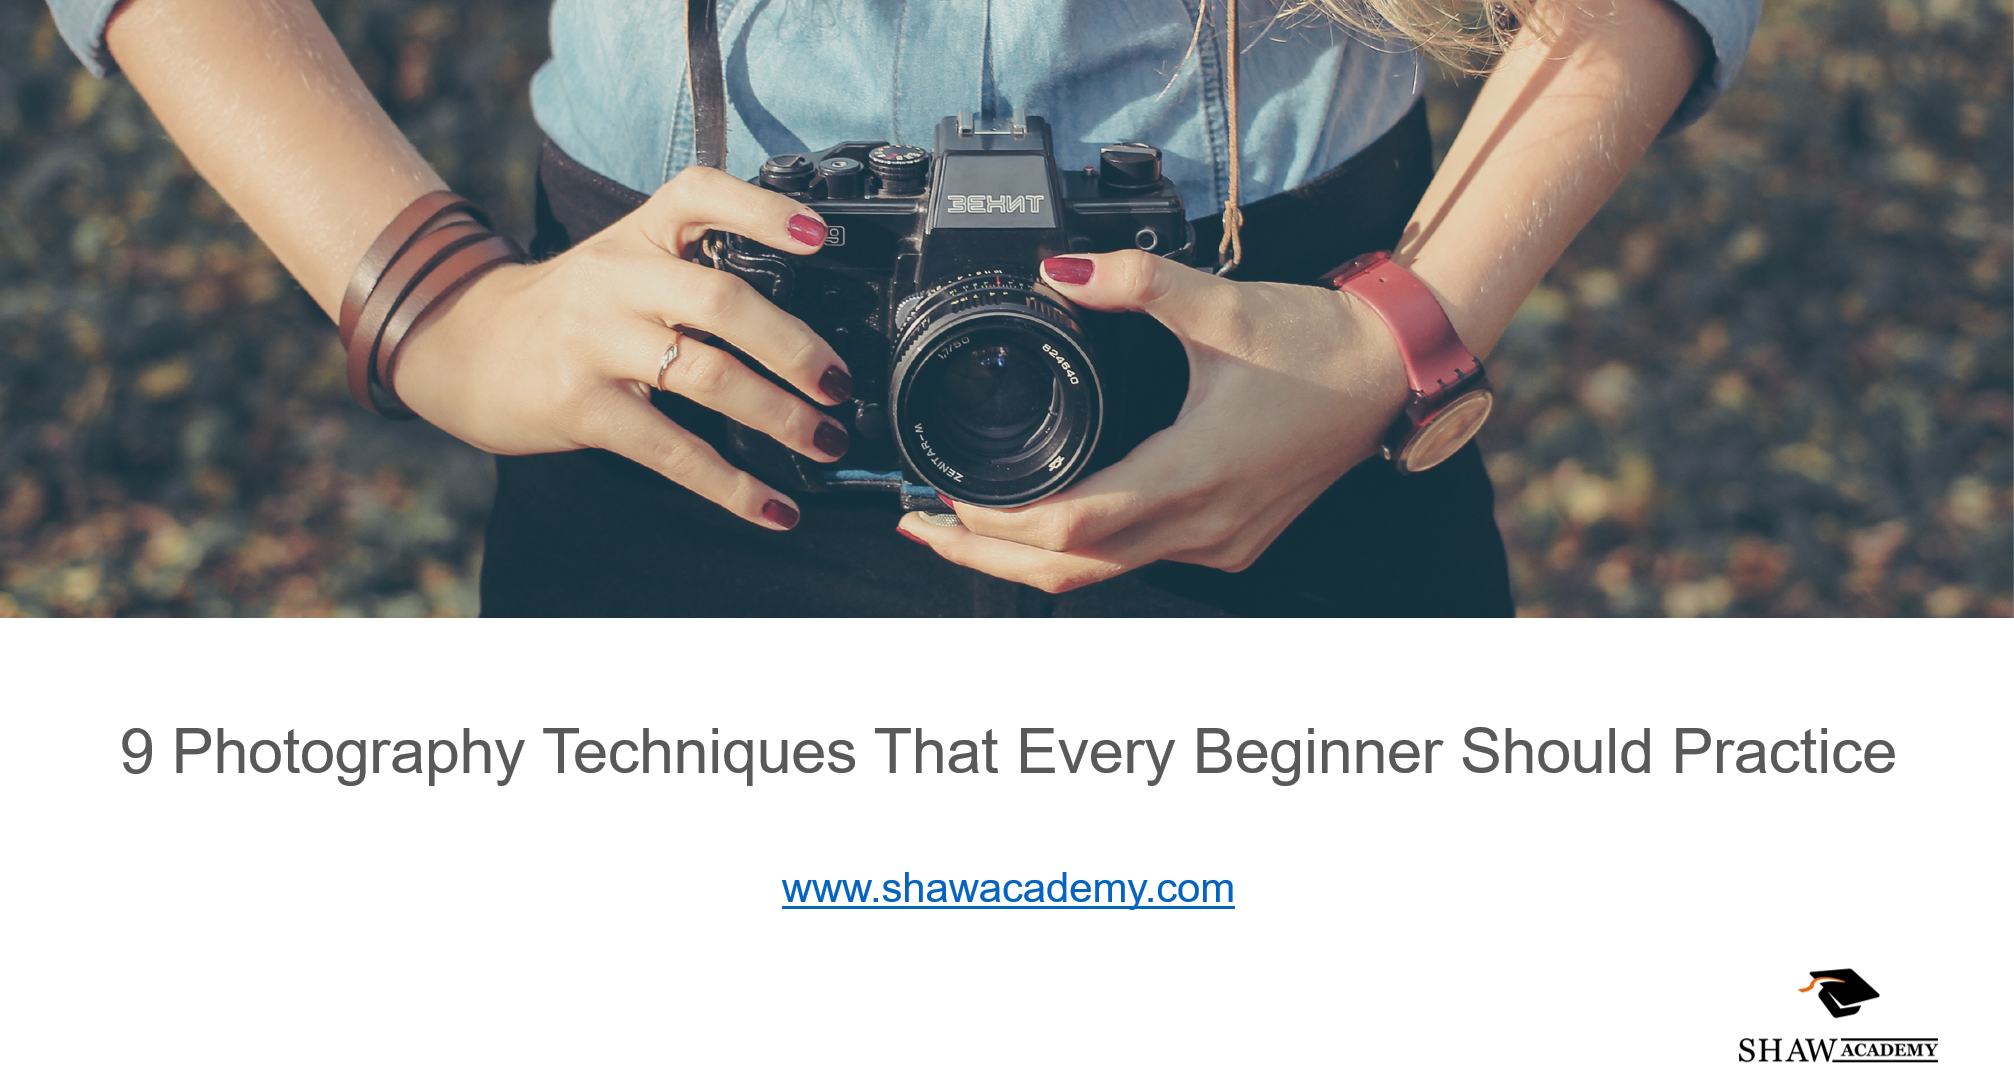 Check out our slideshare on 9 photography techniques that every beginner should practice.